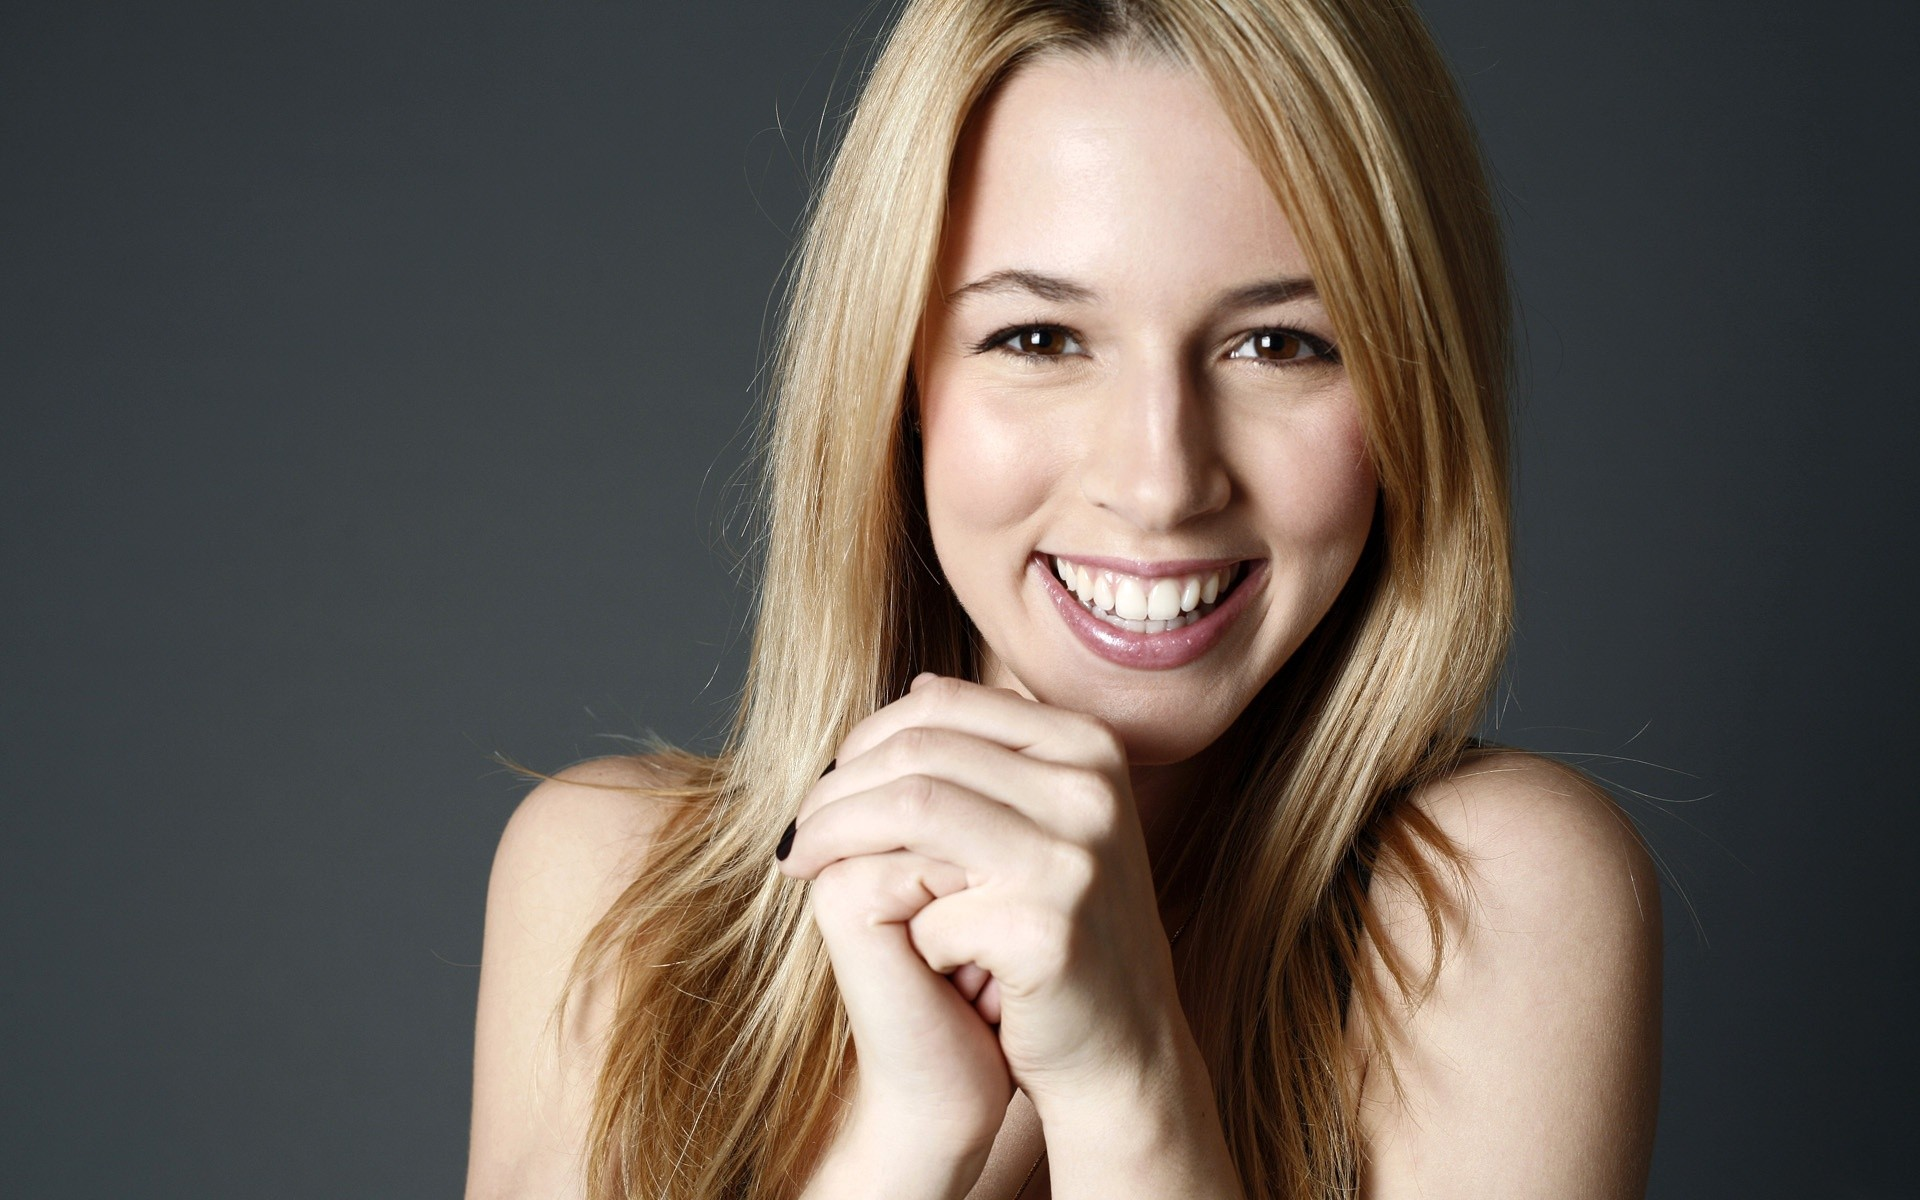 Alona tal nude images 59